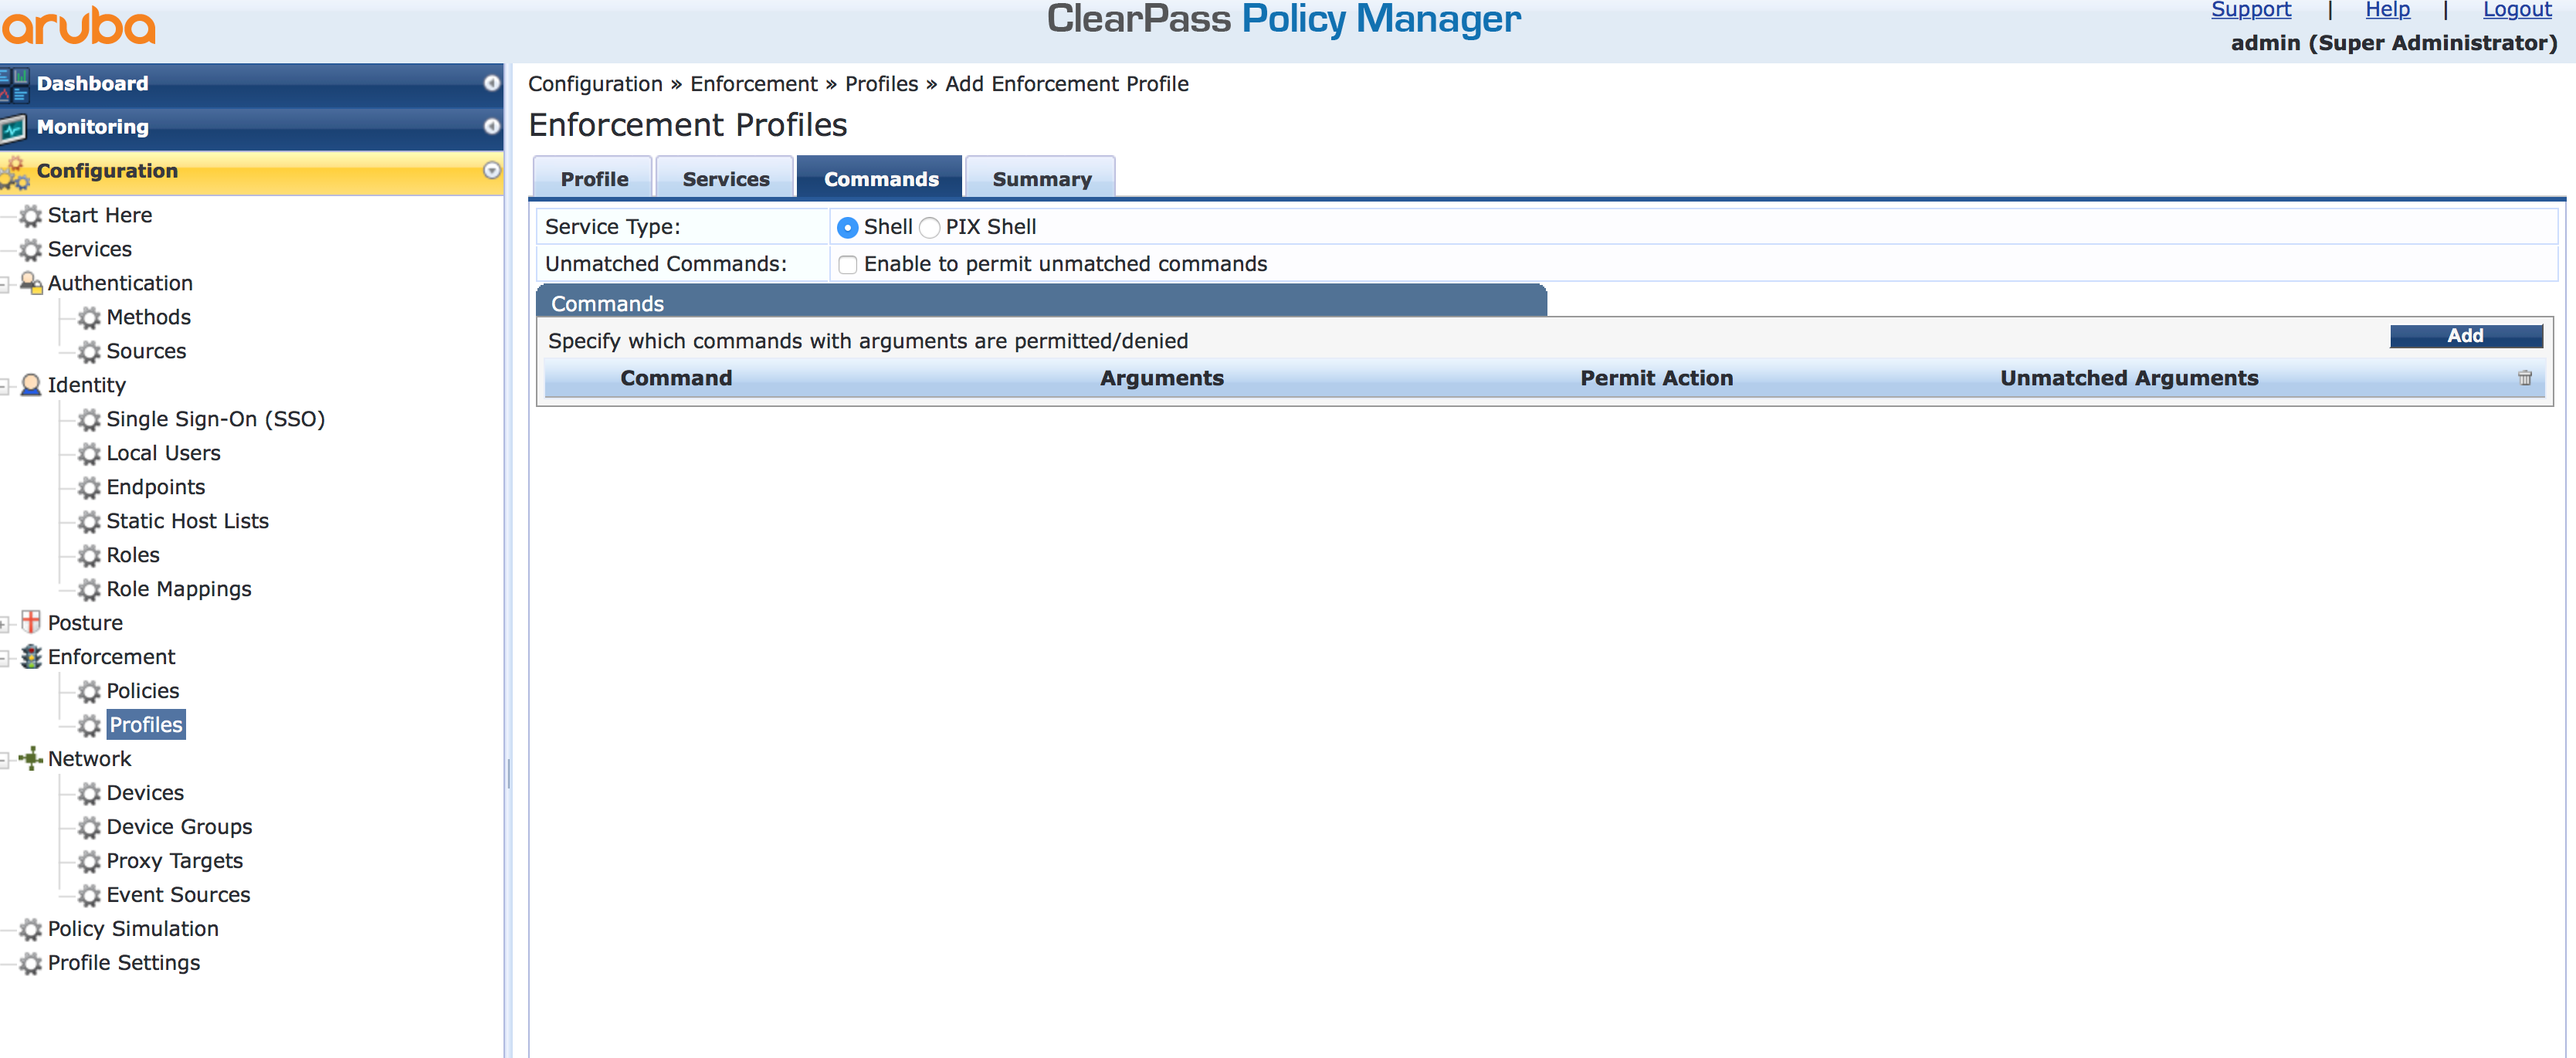 Operator Login - Add Enforcement TACACS Profile Commands in ClearPass